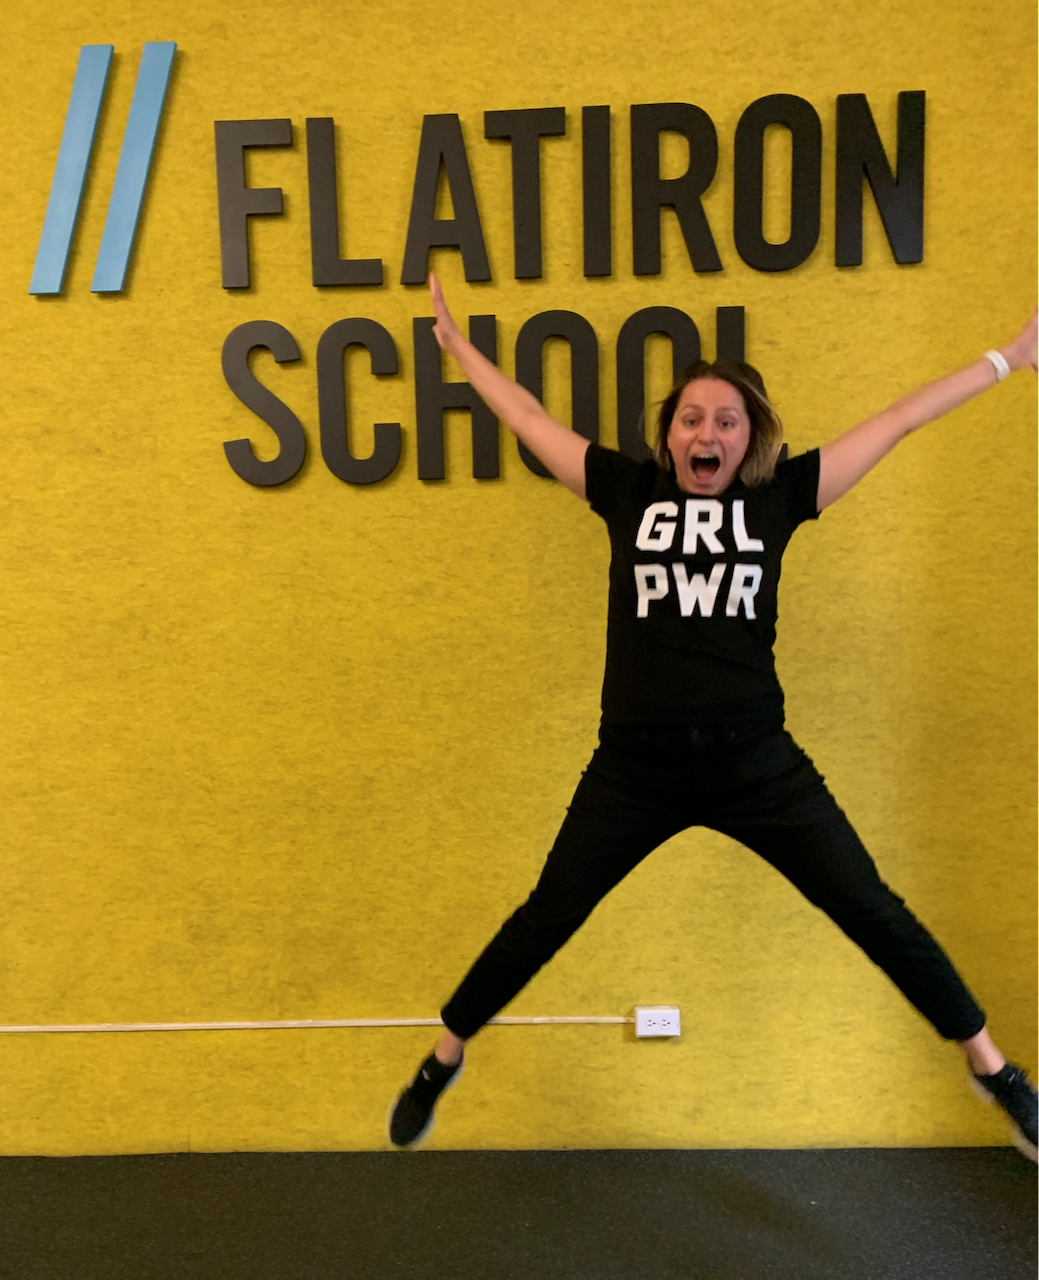 Jumping with excitement after graduating Flatiron School